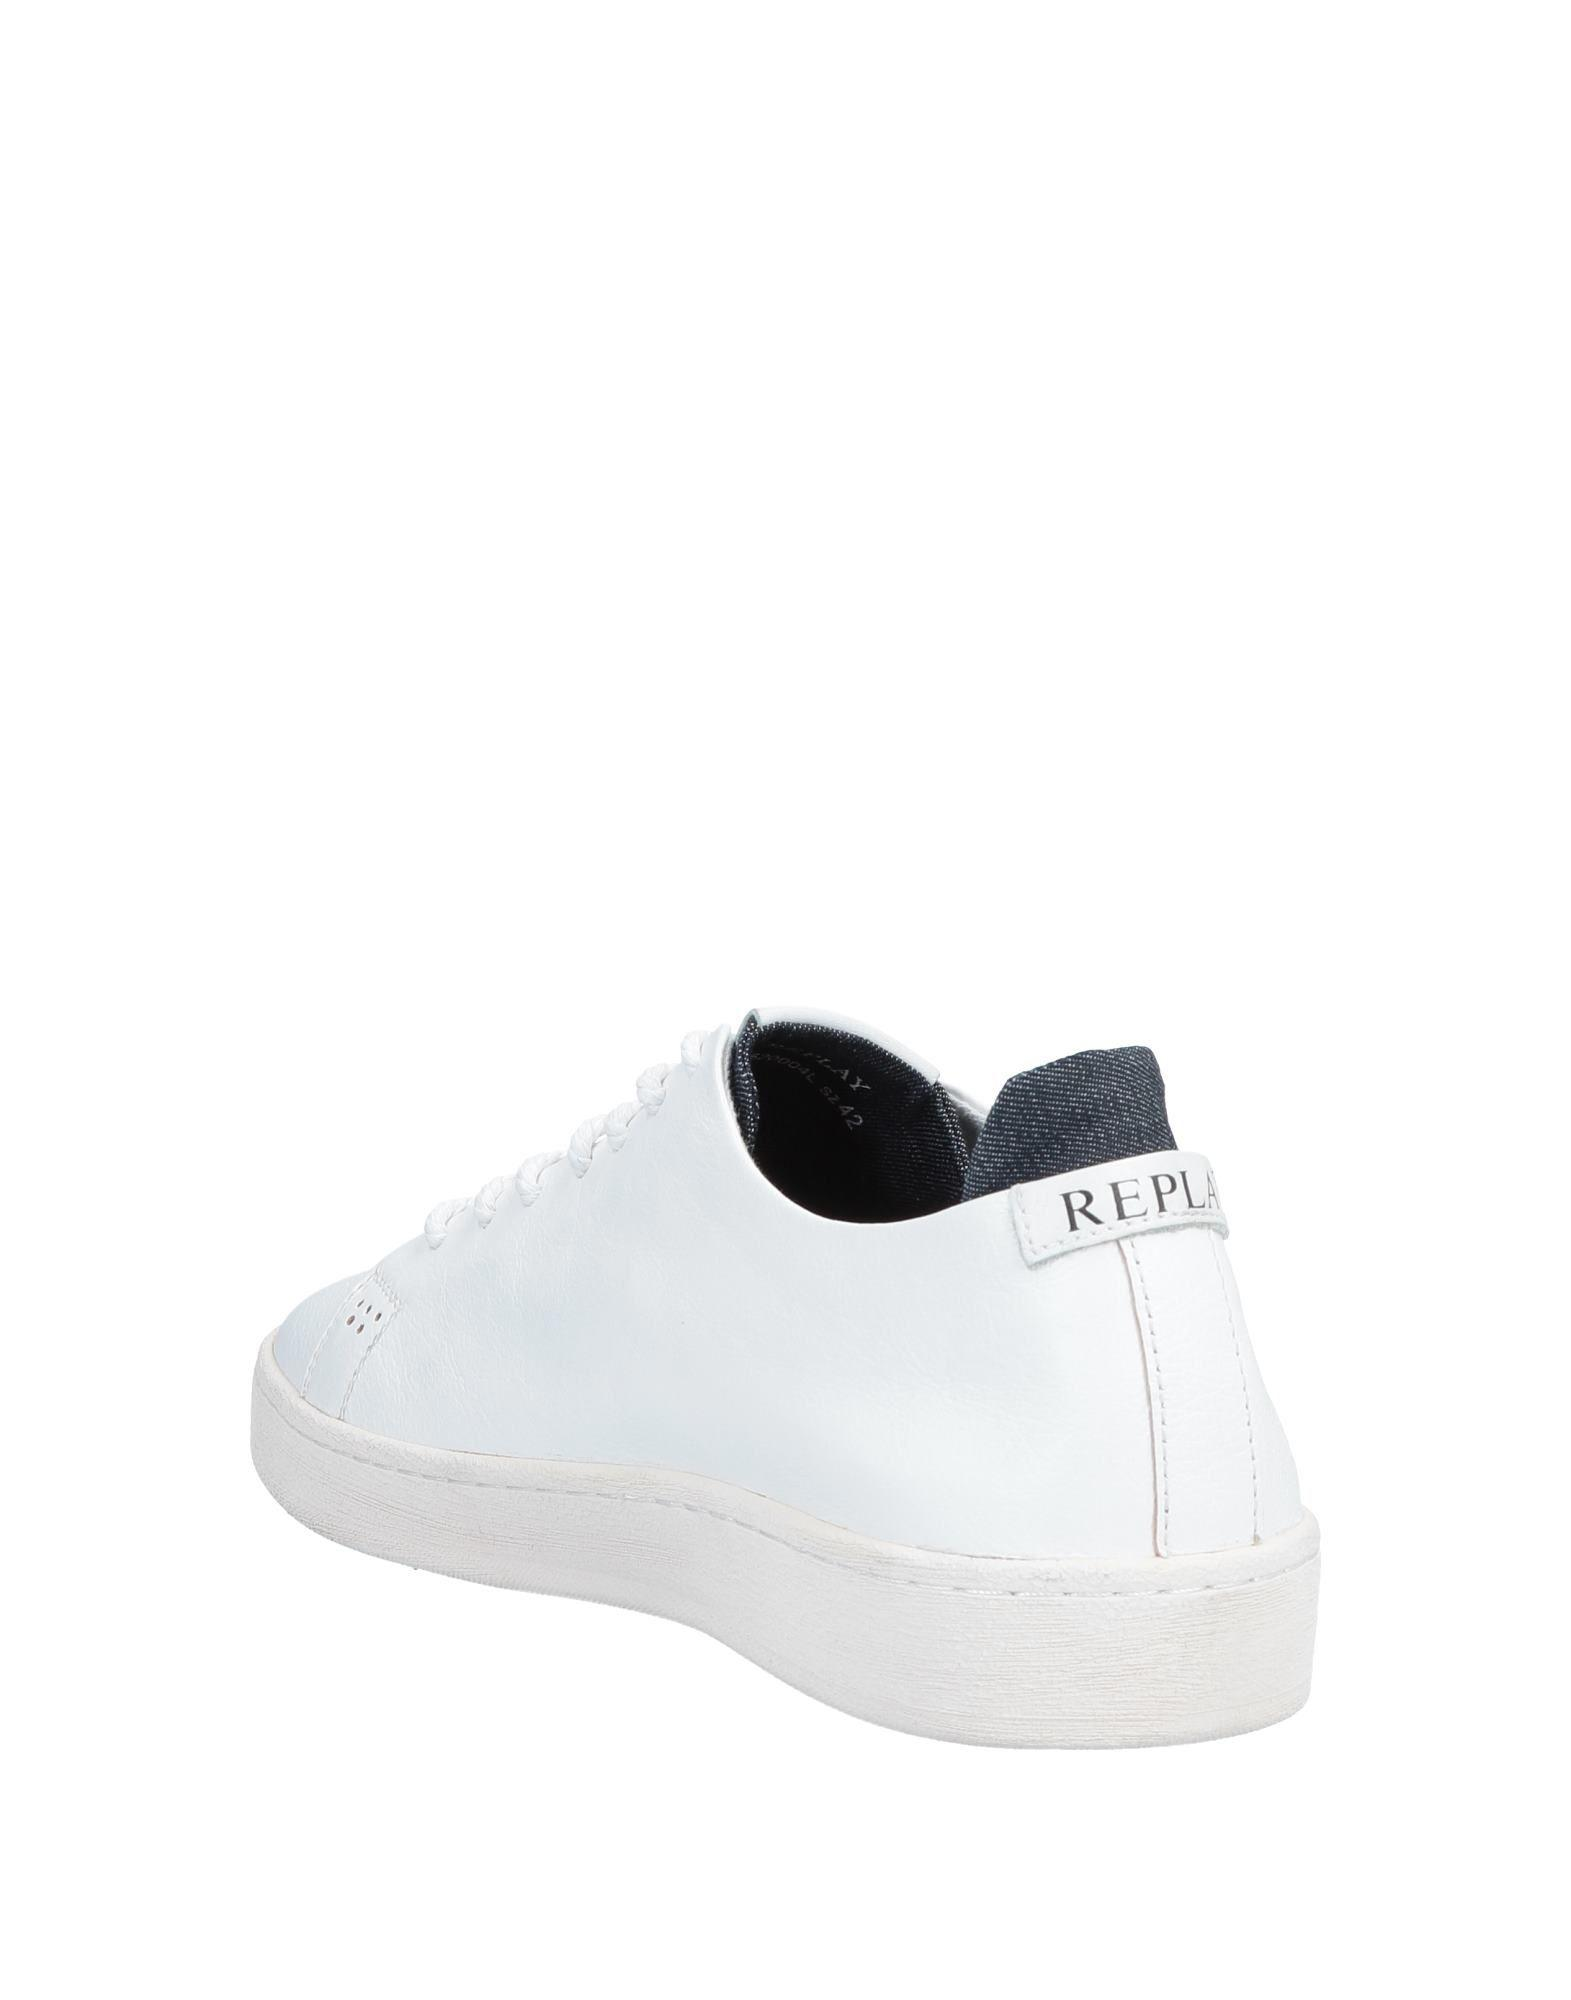 Replay Low-tops \u0026 Sneakers in White for